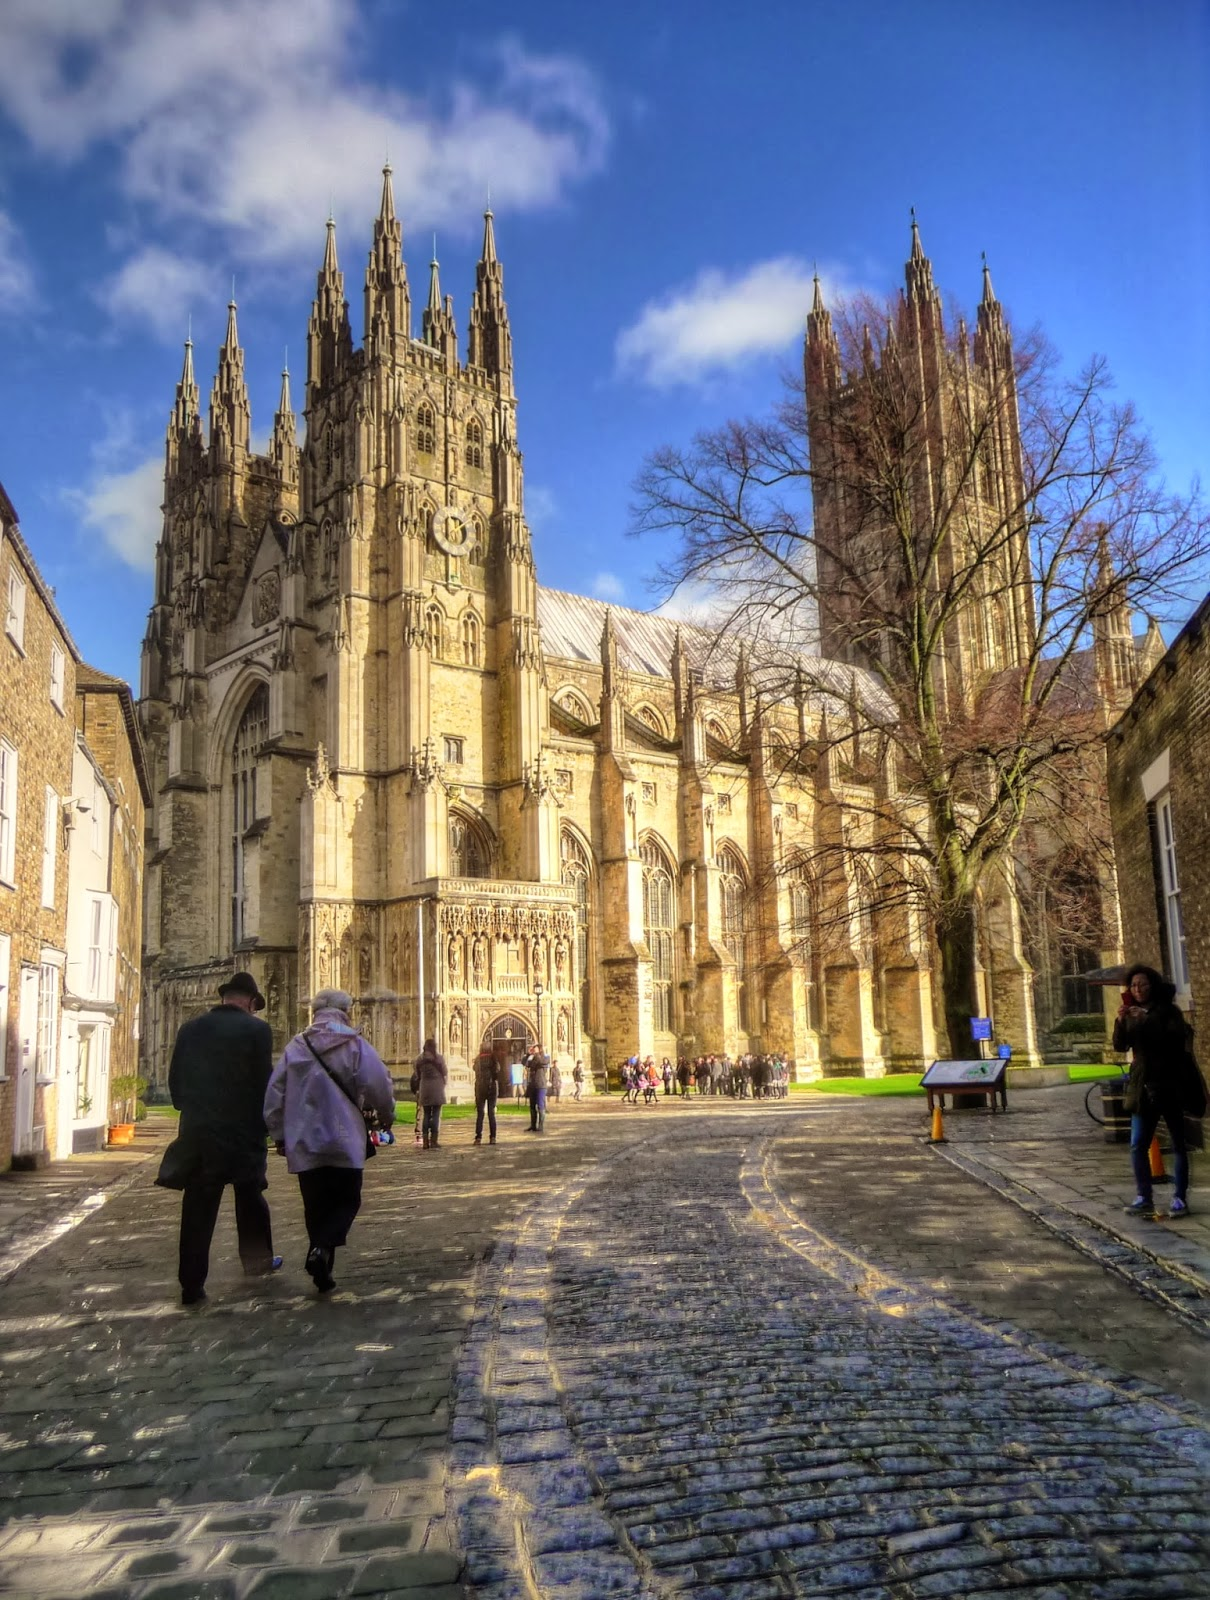 Canterbury Cathedral, seat of the Archbishop of Canterbury, the spiritual leader of the Anglican Communion.